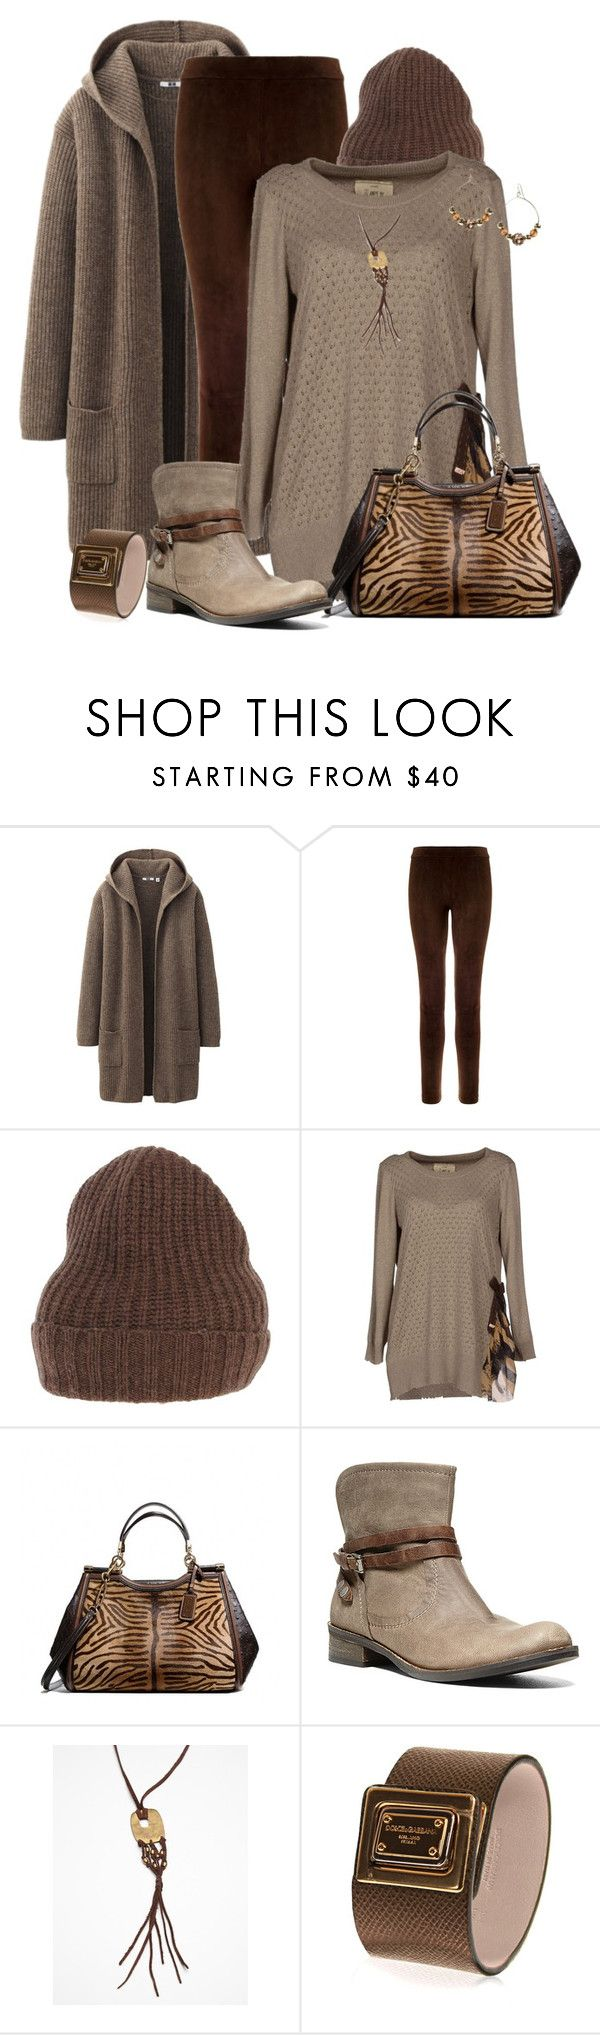 """""""Browns"""" by victoria1961notags ❤ liked on Polyvore featuring Uniqlo, L'Agence, VNECK, Aniye By, Coach, Steve Madden, Free People and Dolce&Gabbana"""